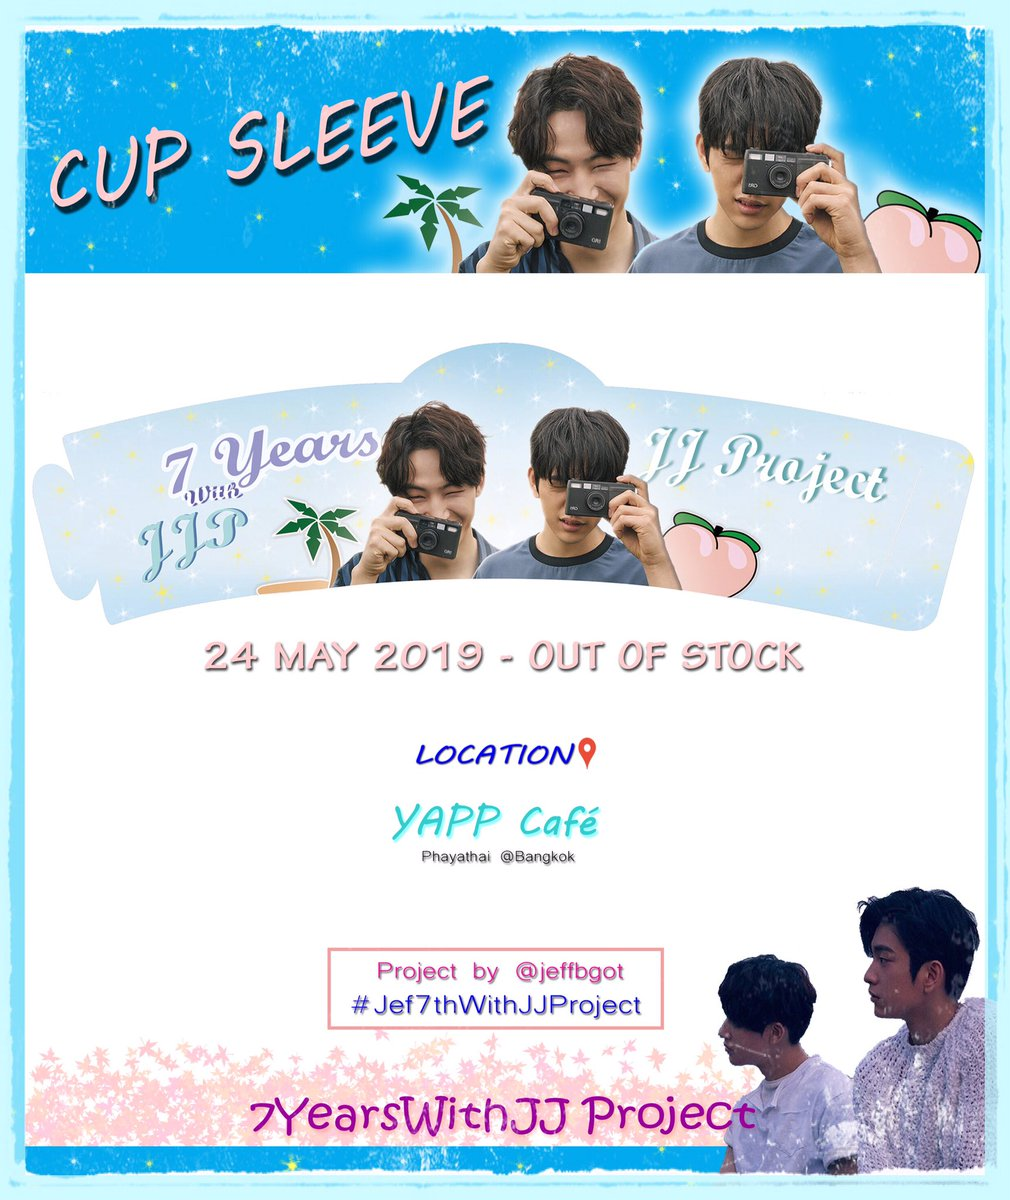 Give Away Cup Sleeve   #Jef7thWithJJProject  7 Years with JJProject เริ่มแจกแล้วนะคะ   Date : 24May2019 - Out of stock  #7YearsWithJJProject  #7YearsWithJJP #JJP #JJPROJECT #ปมนยอง<br>http://pic.twitter.com/NtDgrXoFkm